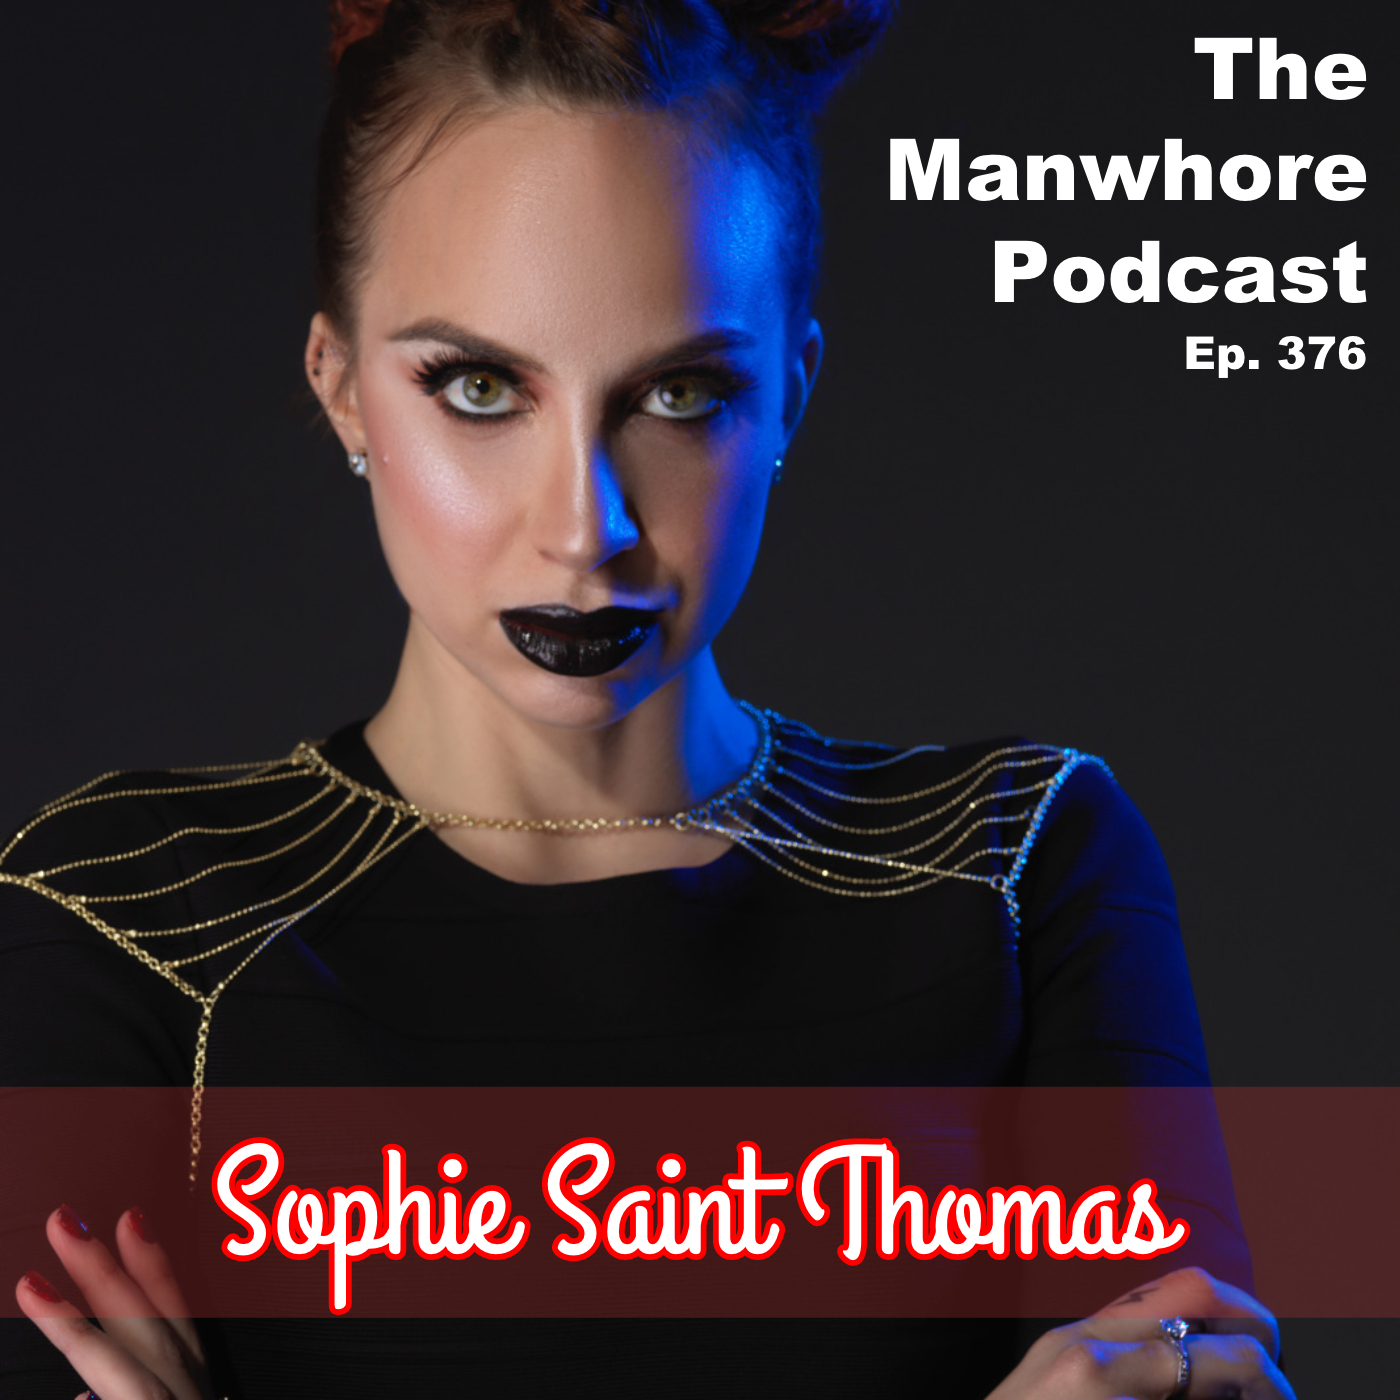 The Manwhore Podcast: A Sex-Positive Quest - Ep. 376: A Sex Witch on Jealousy, Love, and Nonmonogamy (Sophie Saint Thomas)